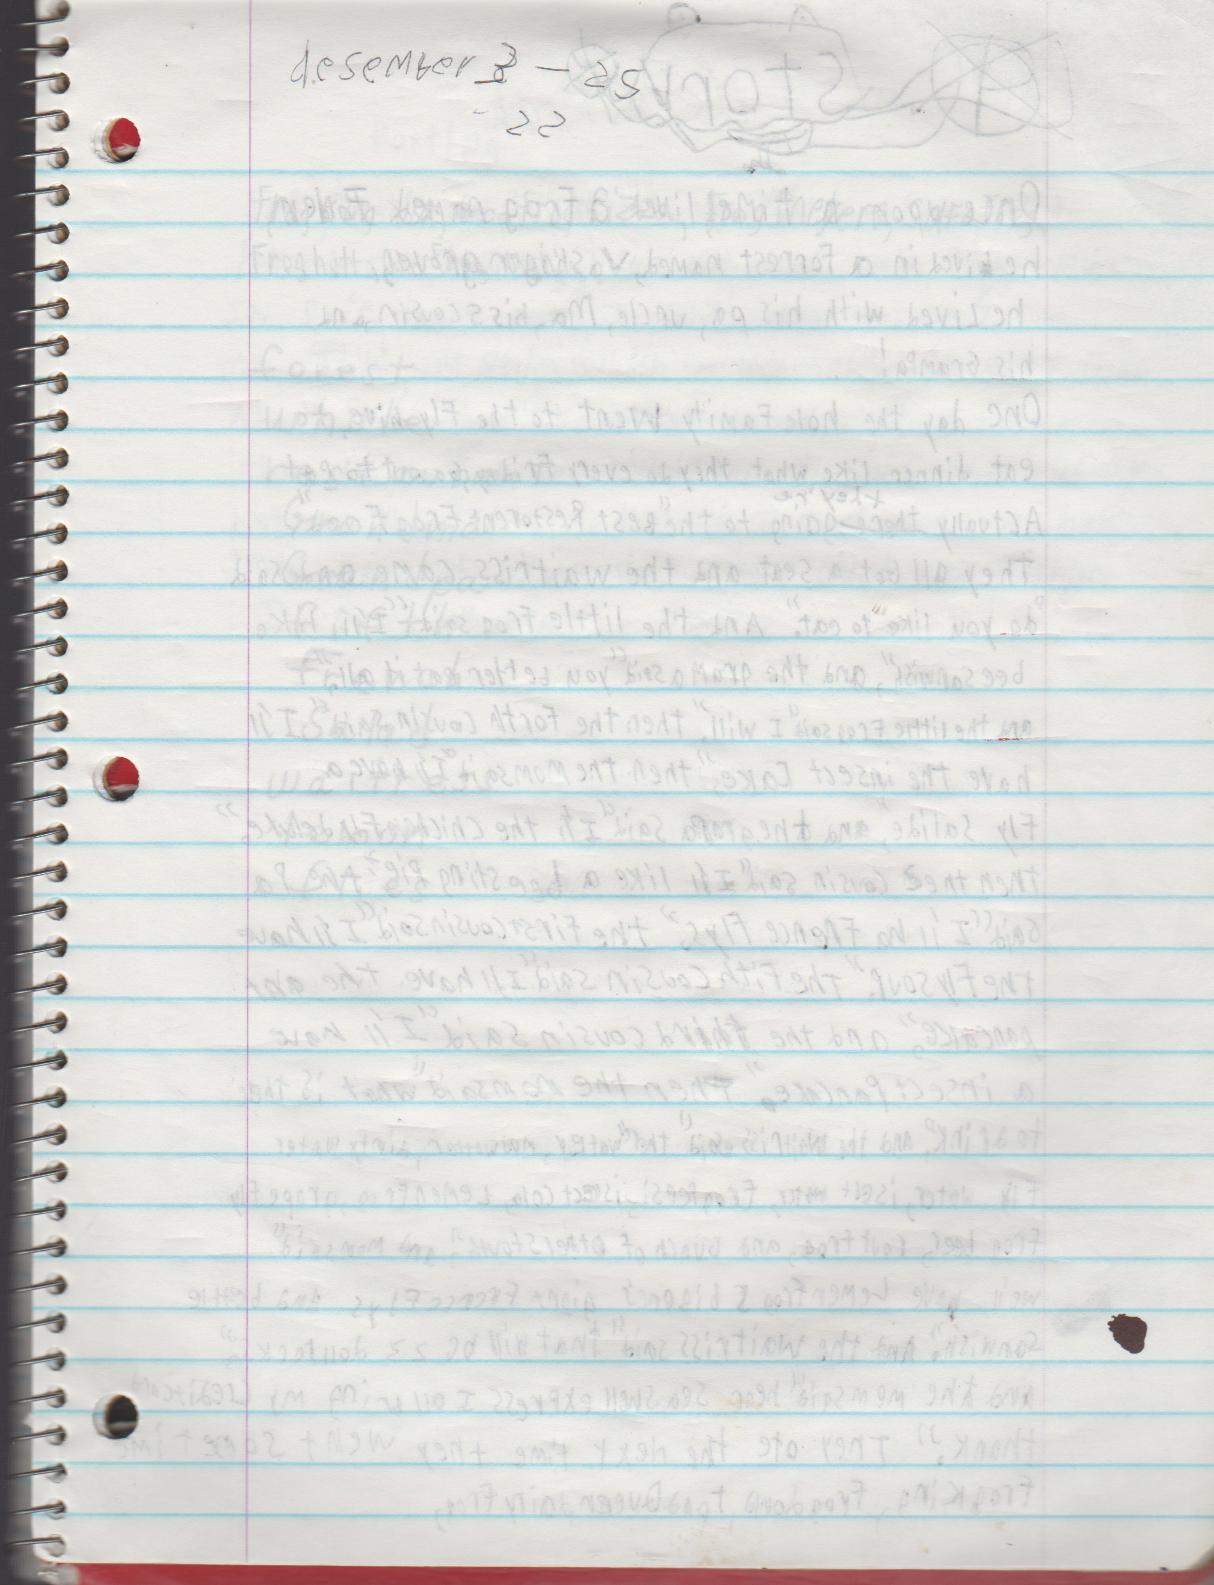 1996-08-18 - Saturday - 11 yr old Joey Arnold's School Book, dates through to 1998 apx, mostly 96, Writings, Drawings, Etc-082.png